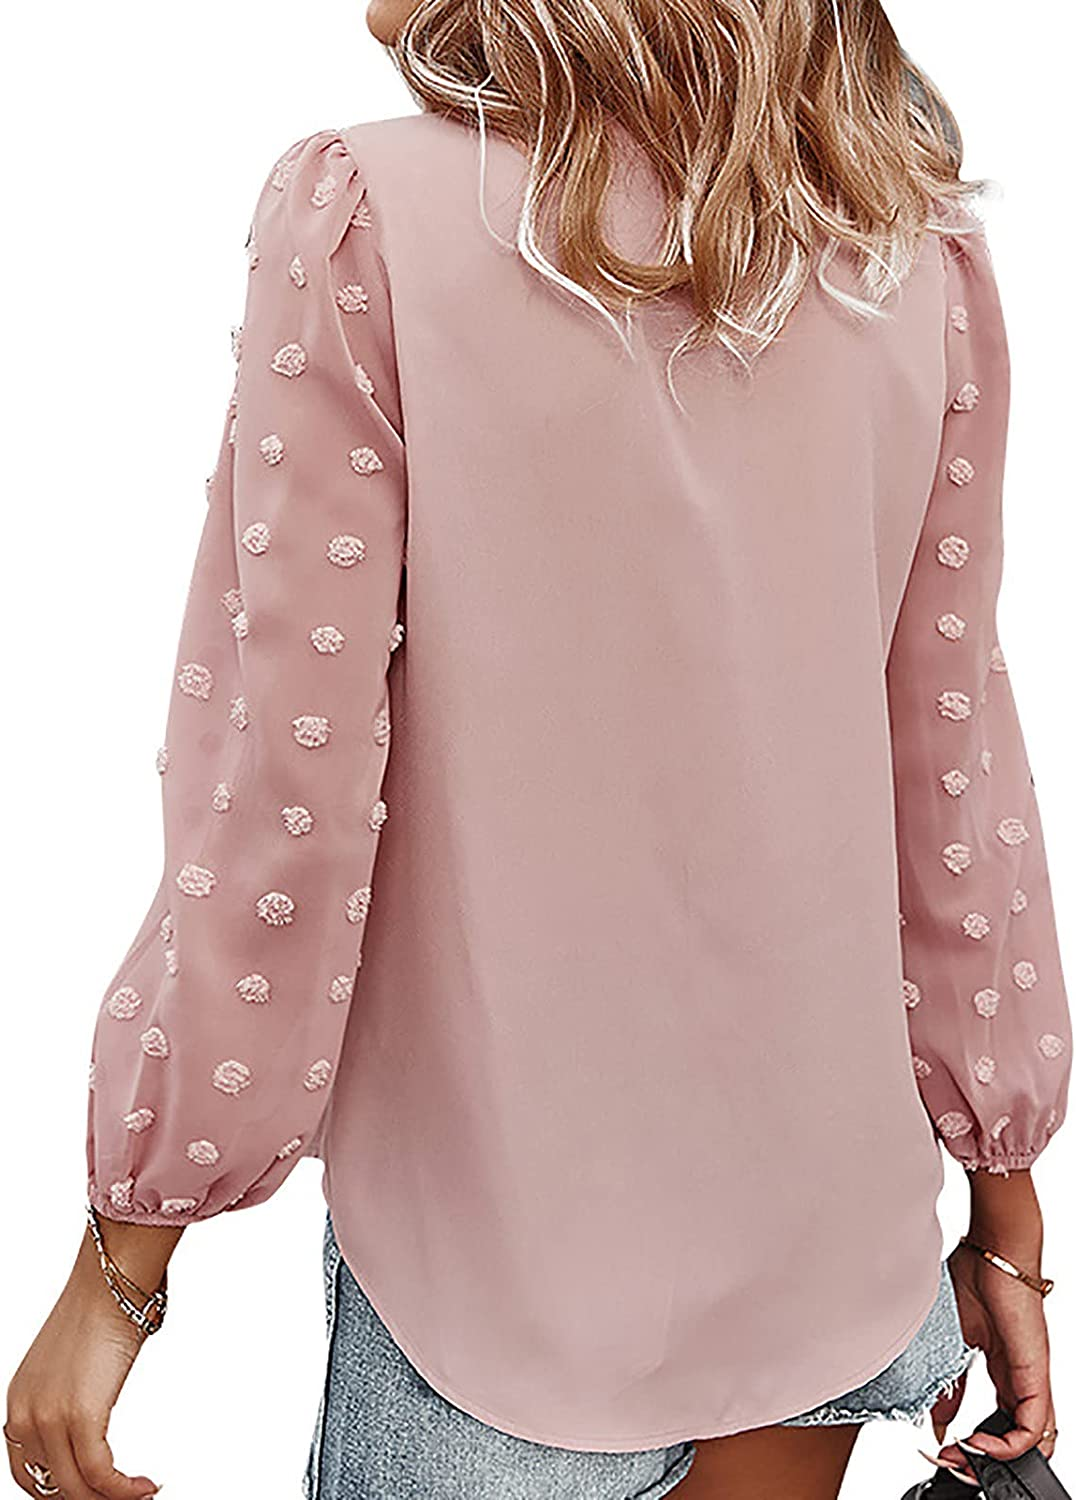 Womens V Neck Lace Crochet Pom Pom Flowy Long Sleeve Casual T Shirts Blouses Tops